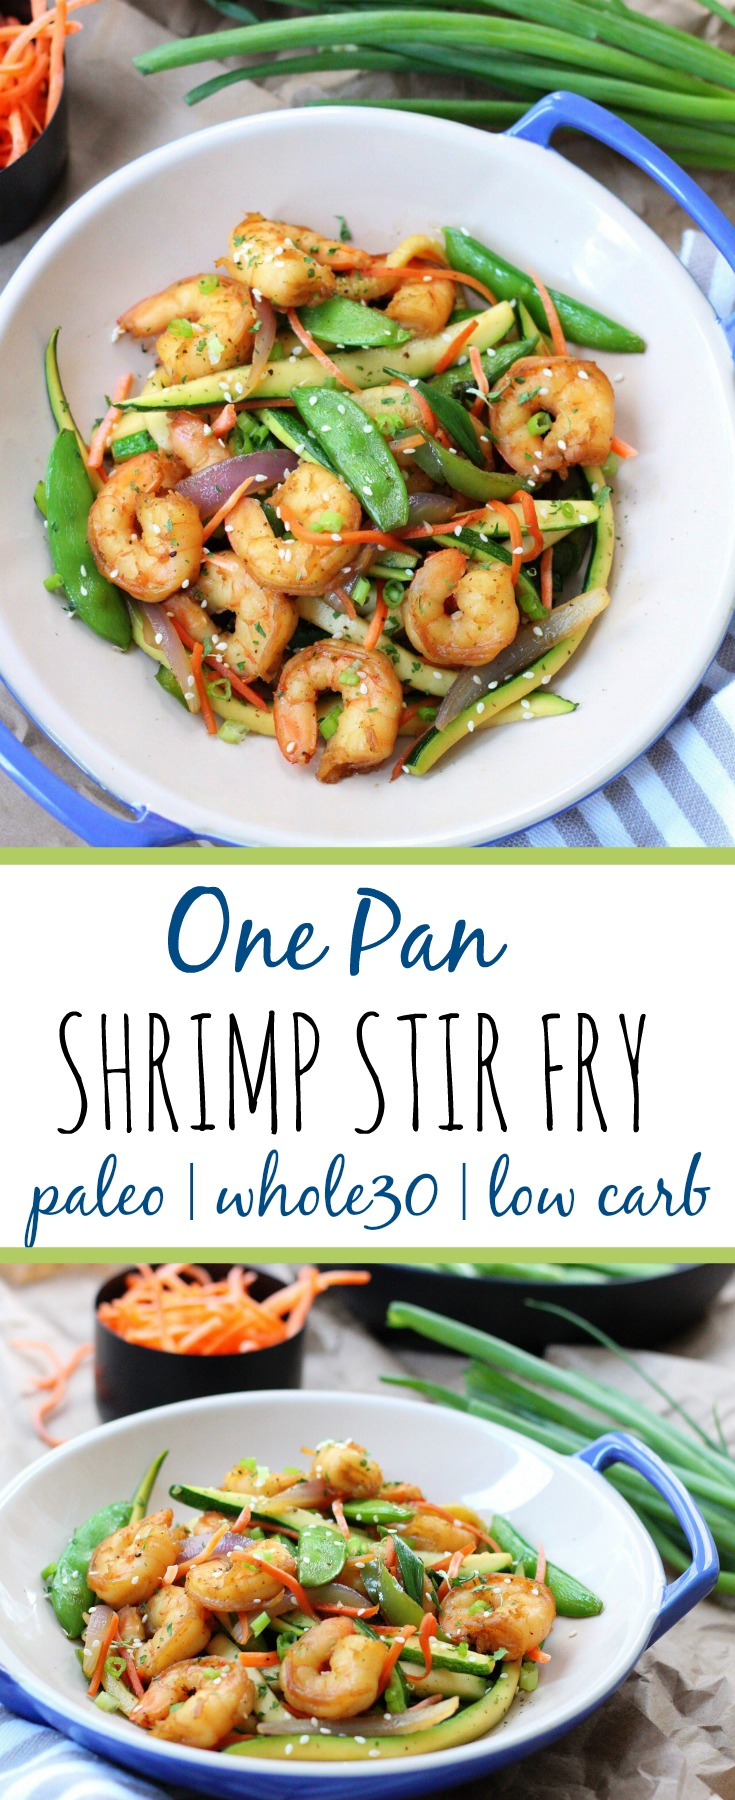 Paleo Shrimp Stir Fry Whole30 Low Carb Tips For Cooking With Gelatin Whole Kitchen Sink